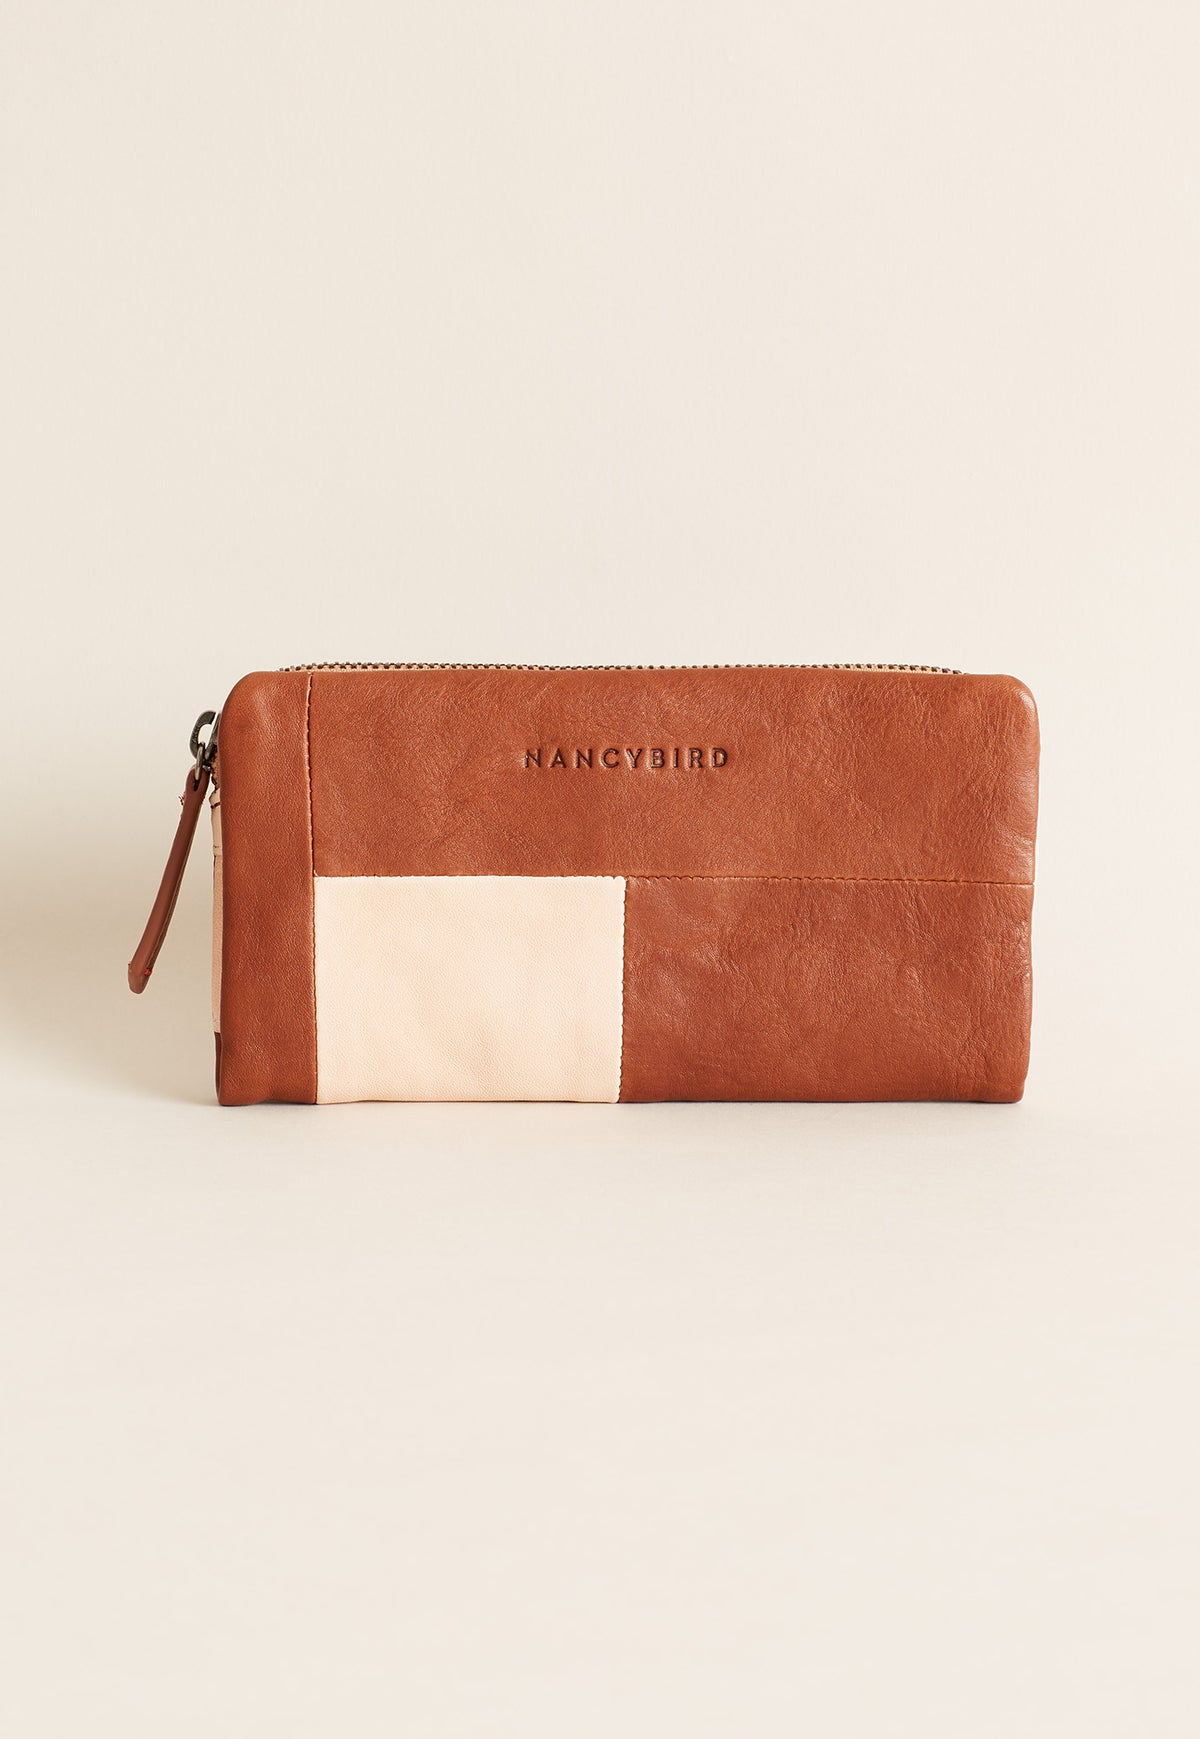 Apollo Wallet - Chestnut